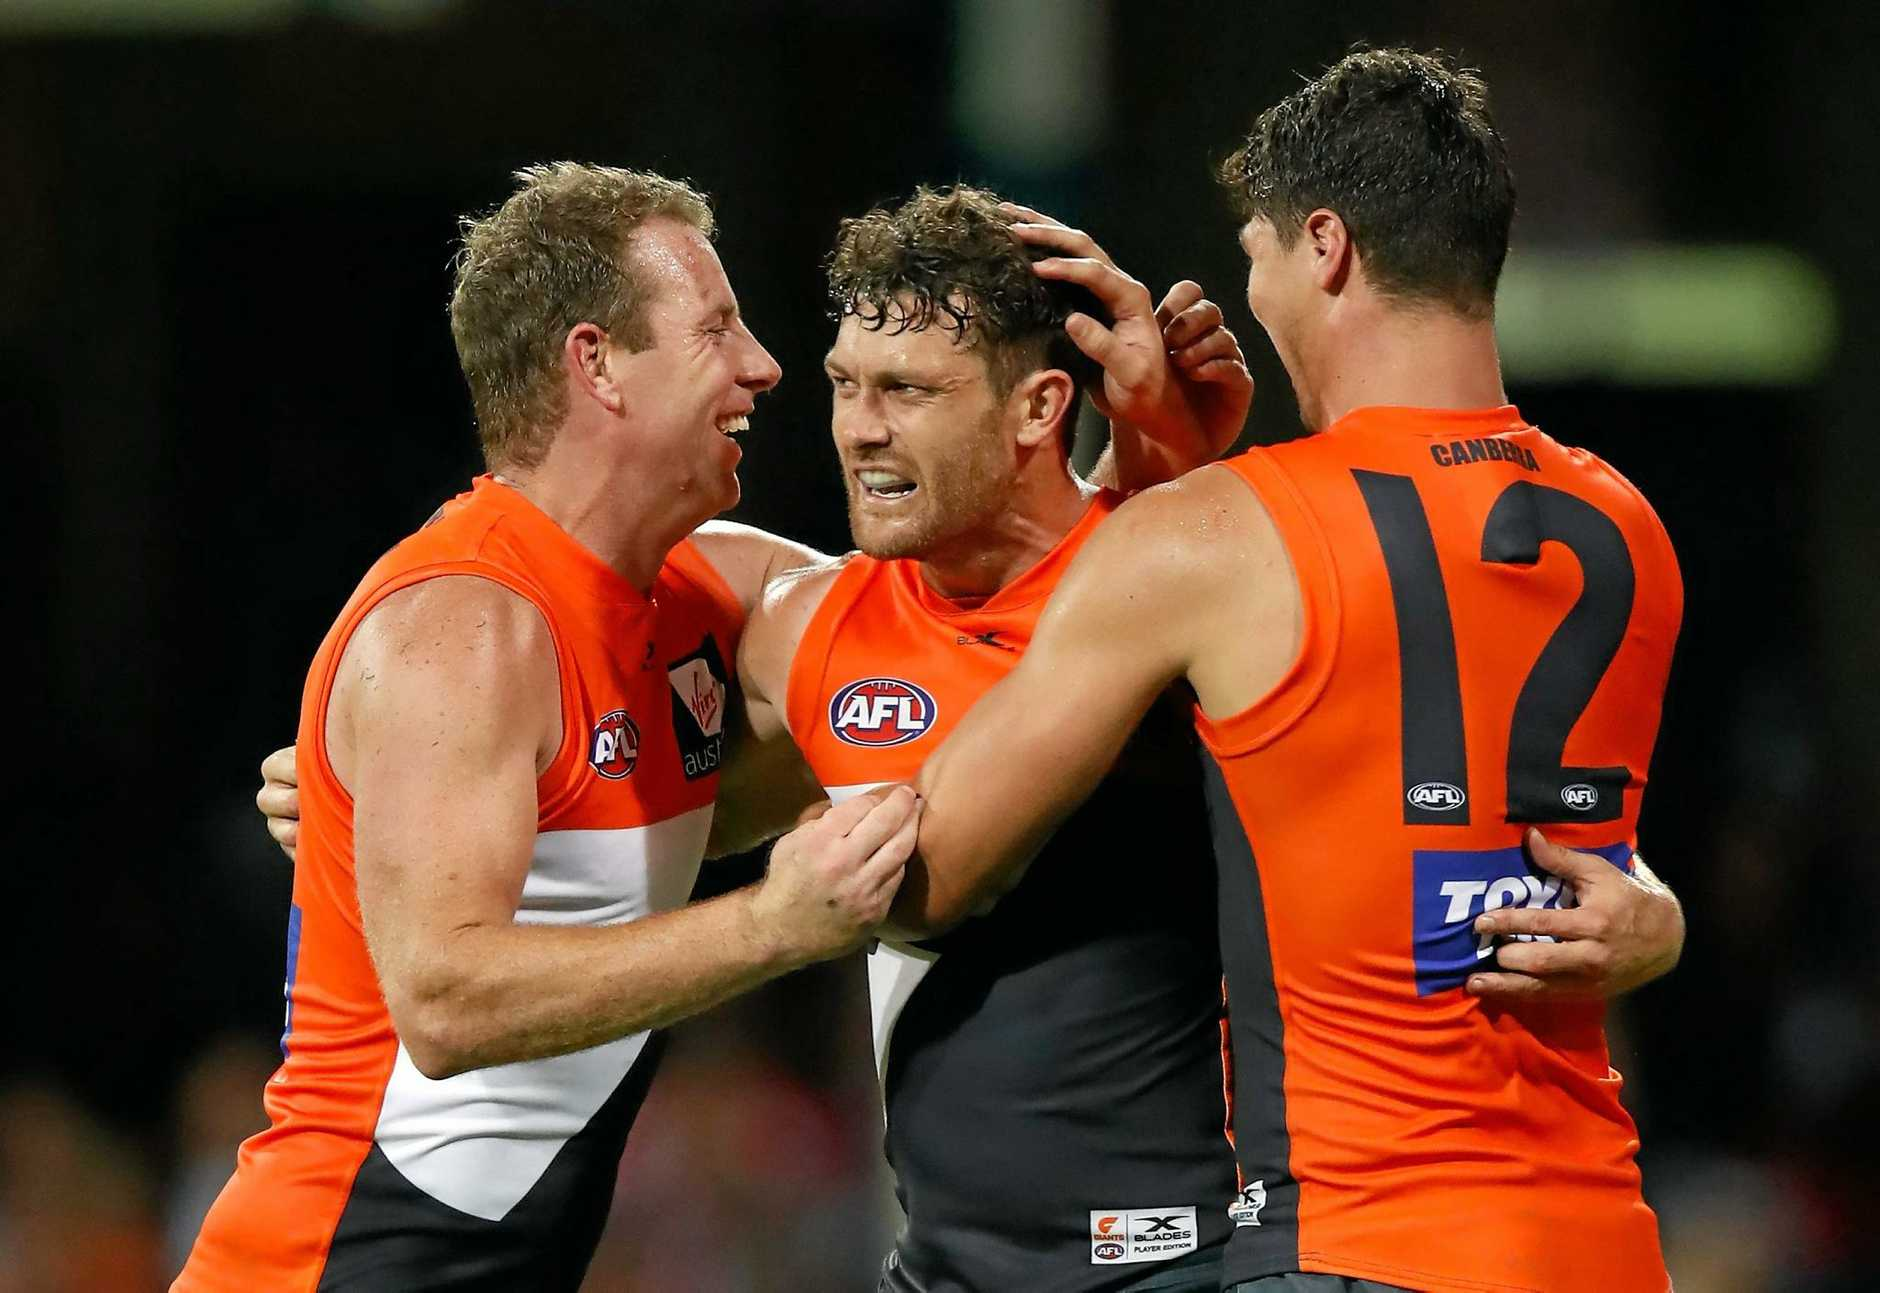 SYDNEY, AUSTRALIA - APRIL 22: (L-R) Steve Johnson, Sam Reid and Jonathon Patton of the Giants celebrate during the 2017 AFL round 05 match between the Sydney Swans and the GWS Giants at the Sydney Cricket Ground on April 22, 2017 in Sydney, Australia. (Photo by Michael Willson/AFL Media/Getty Images)